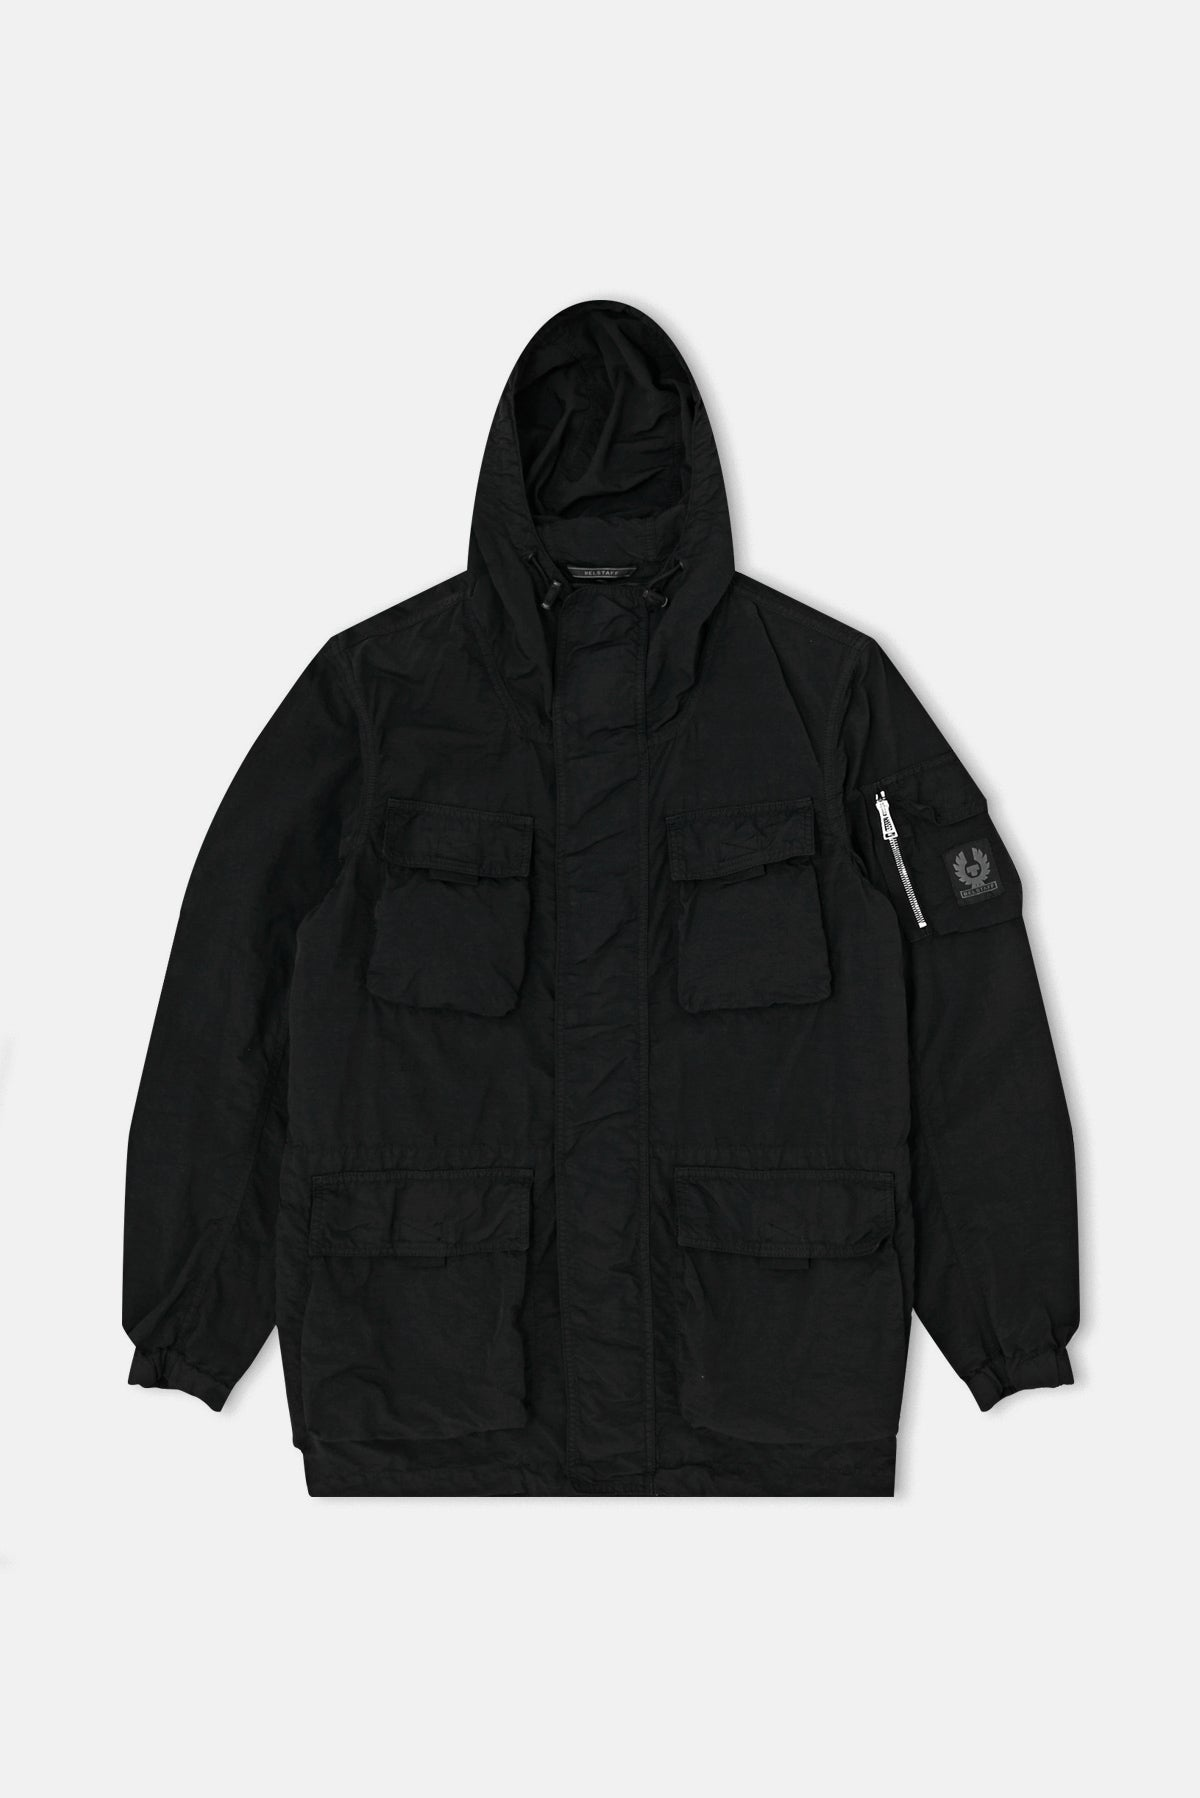 ae7973f332 Belstaff Pallington Parka Jacket available from Priory